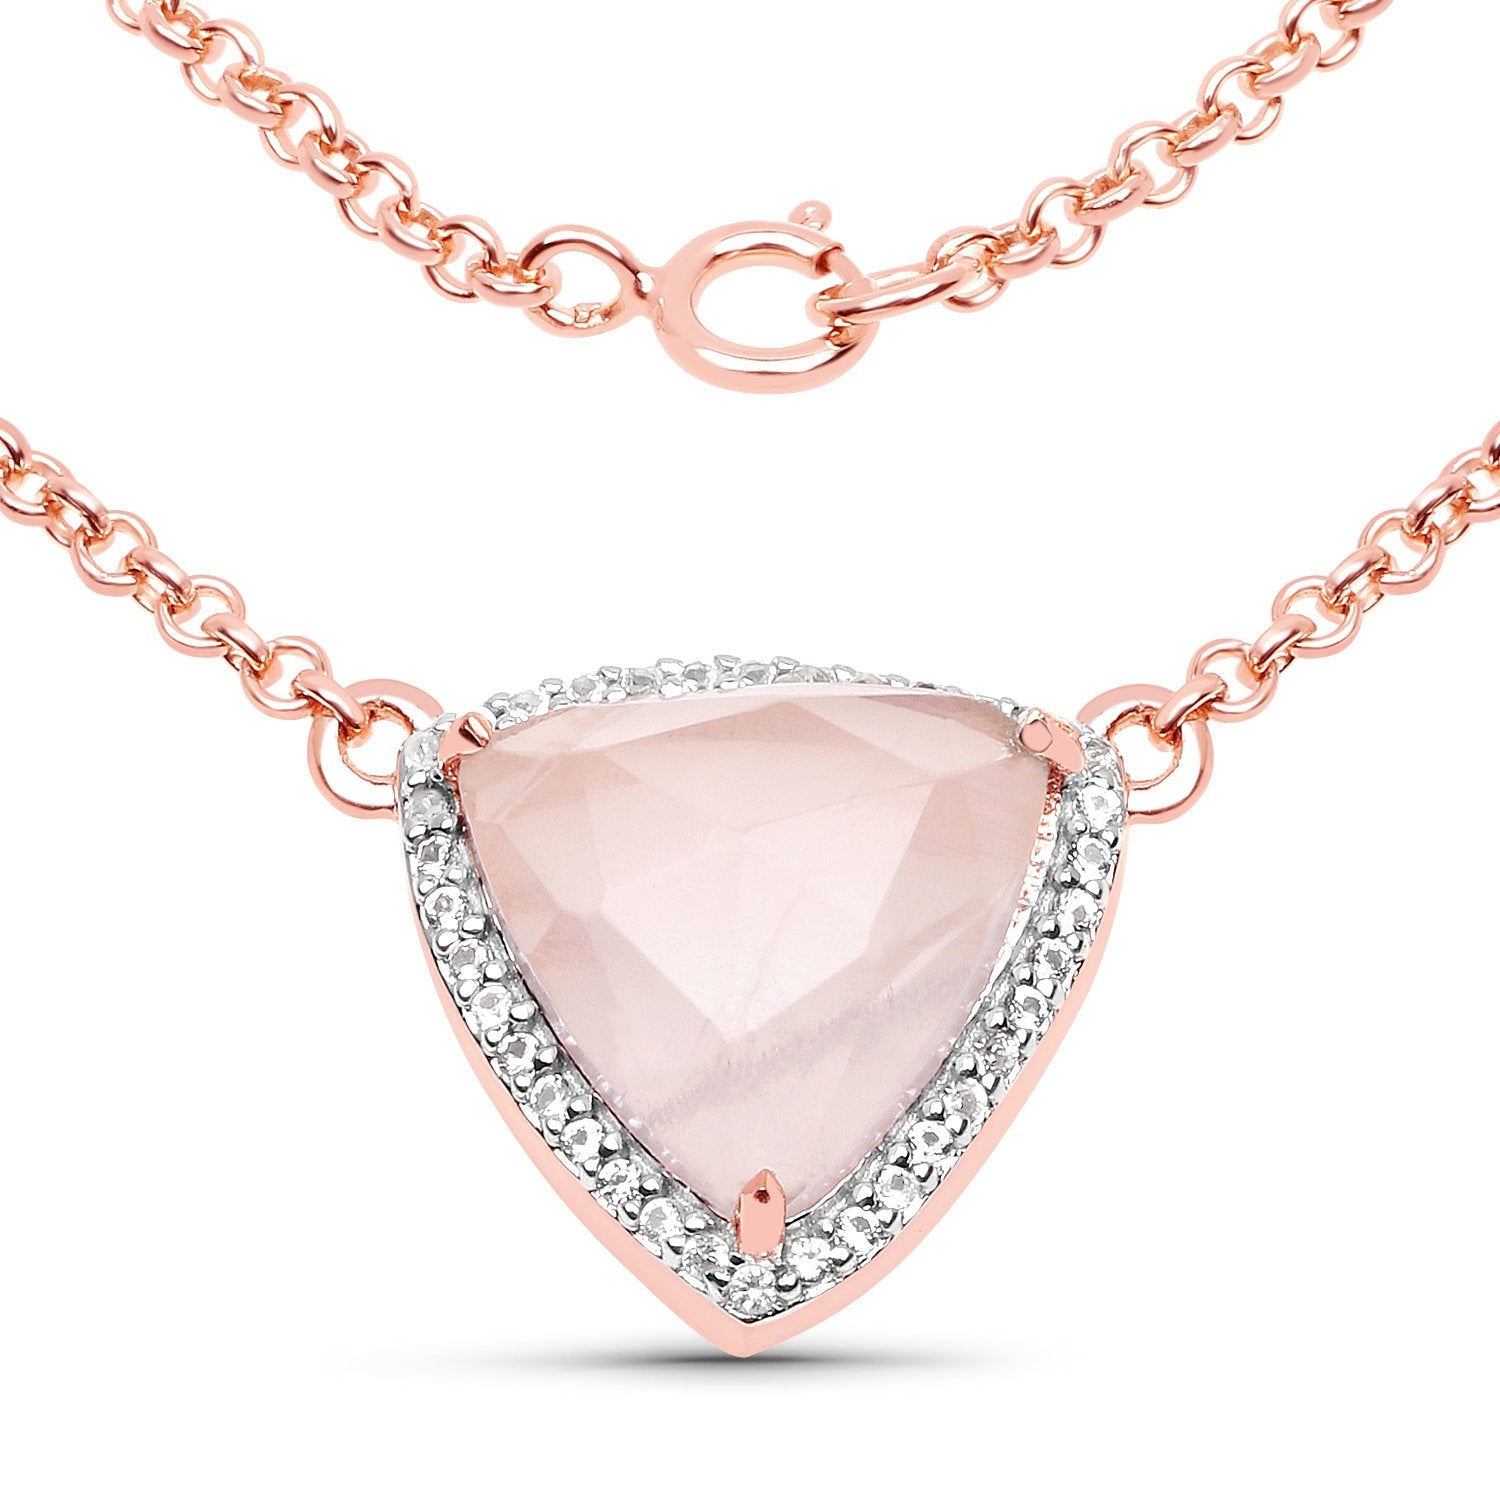 LoveHuang 3.78 Carats Genuine Rose Quartz and White Topaz Trillion Necklace Solid .925 Sterling Silver With 18KT Rose Gold Plating, 18Inch Chain